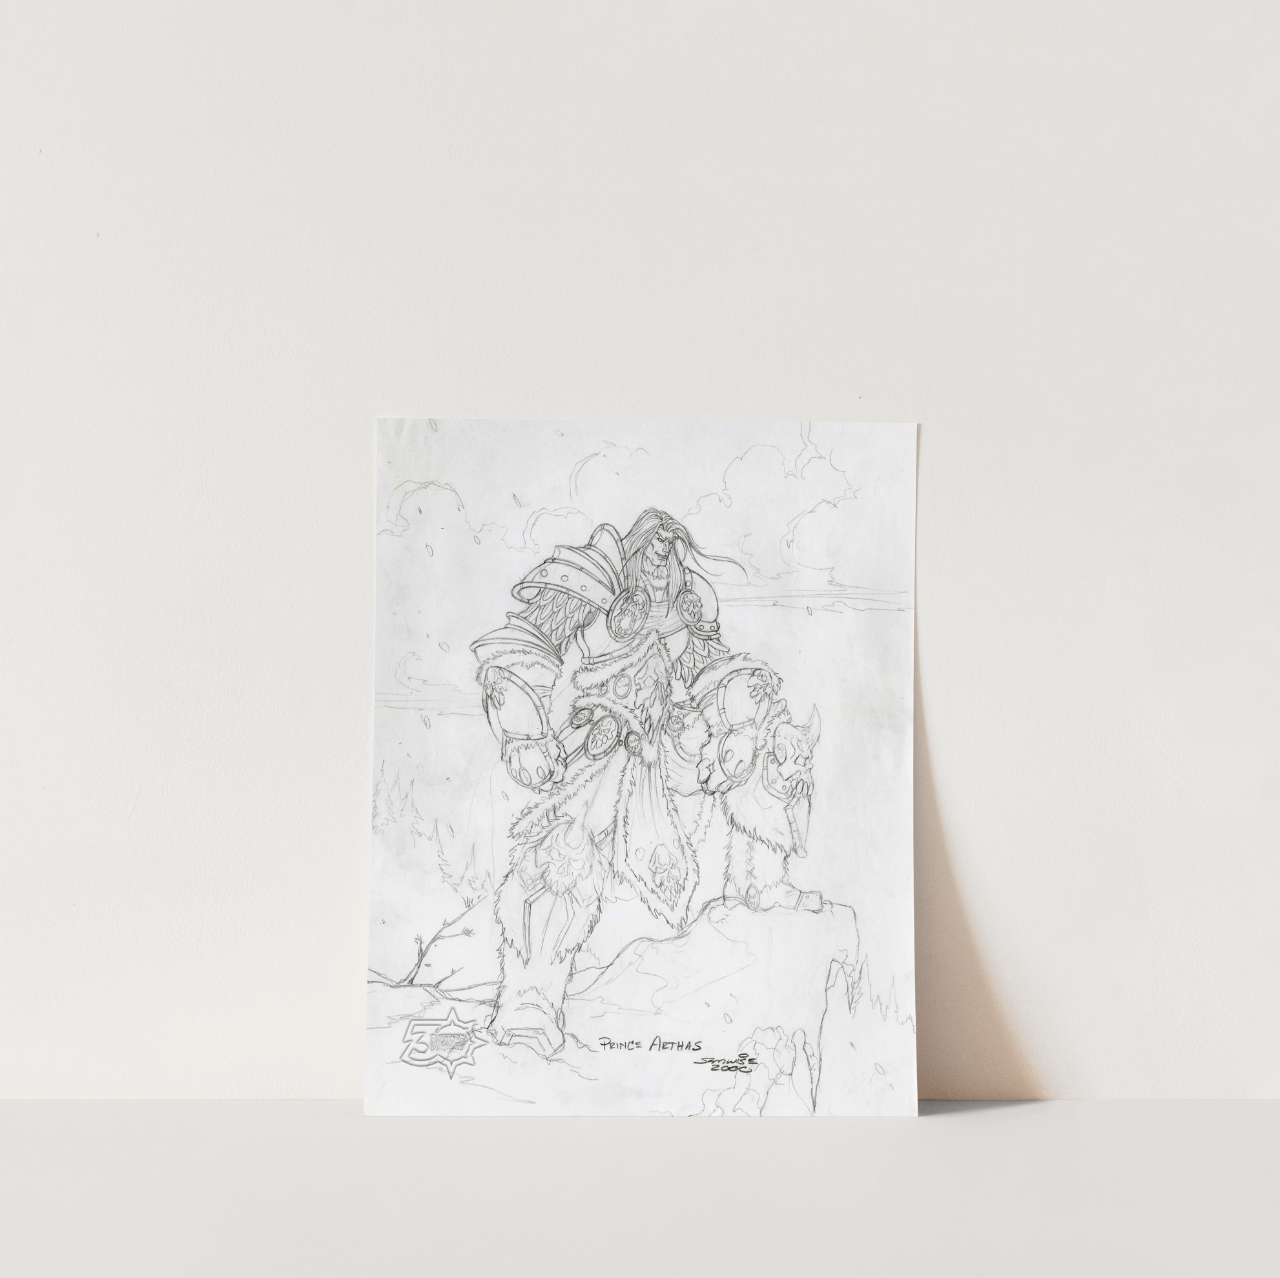 """Prince Arthas Concept Art Print 8"""" x 10"""", From the Vault - Limited Release 2"""